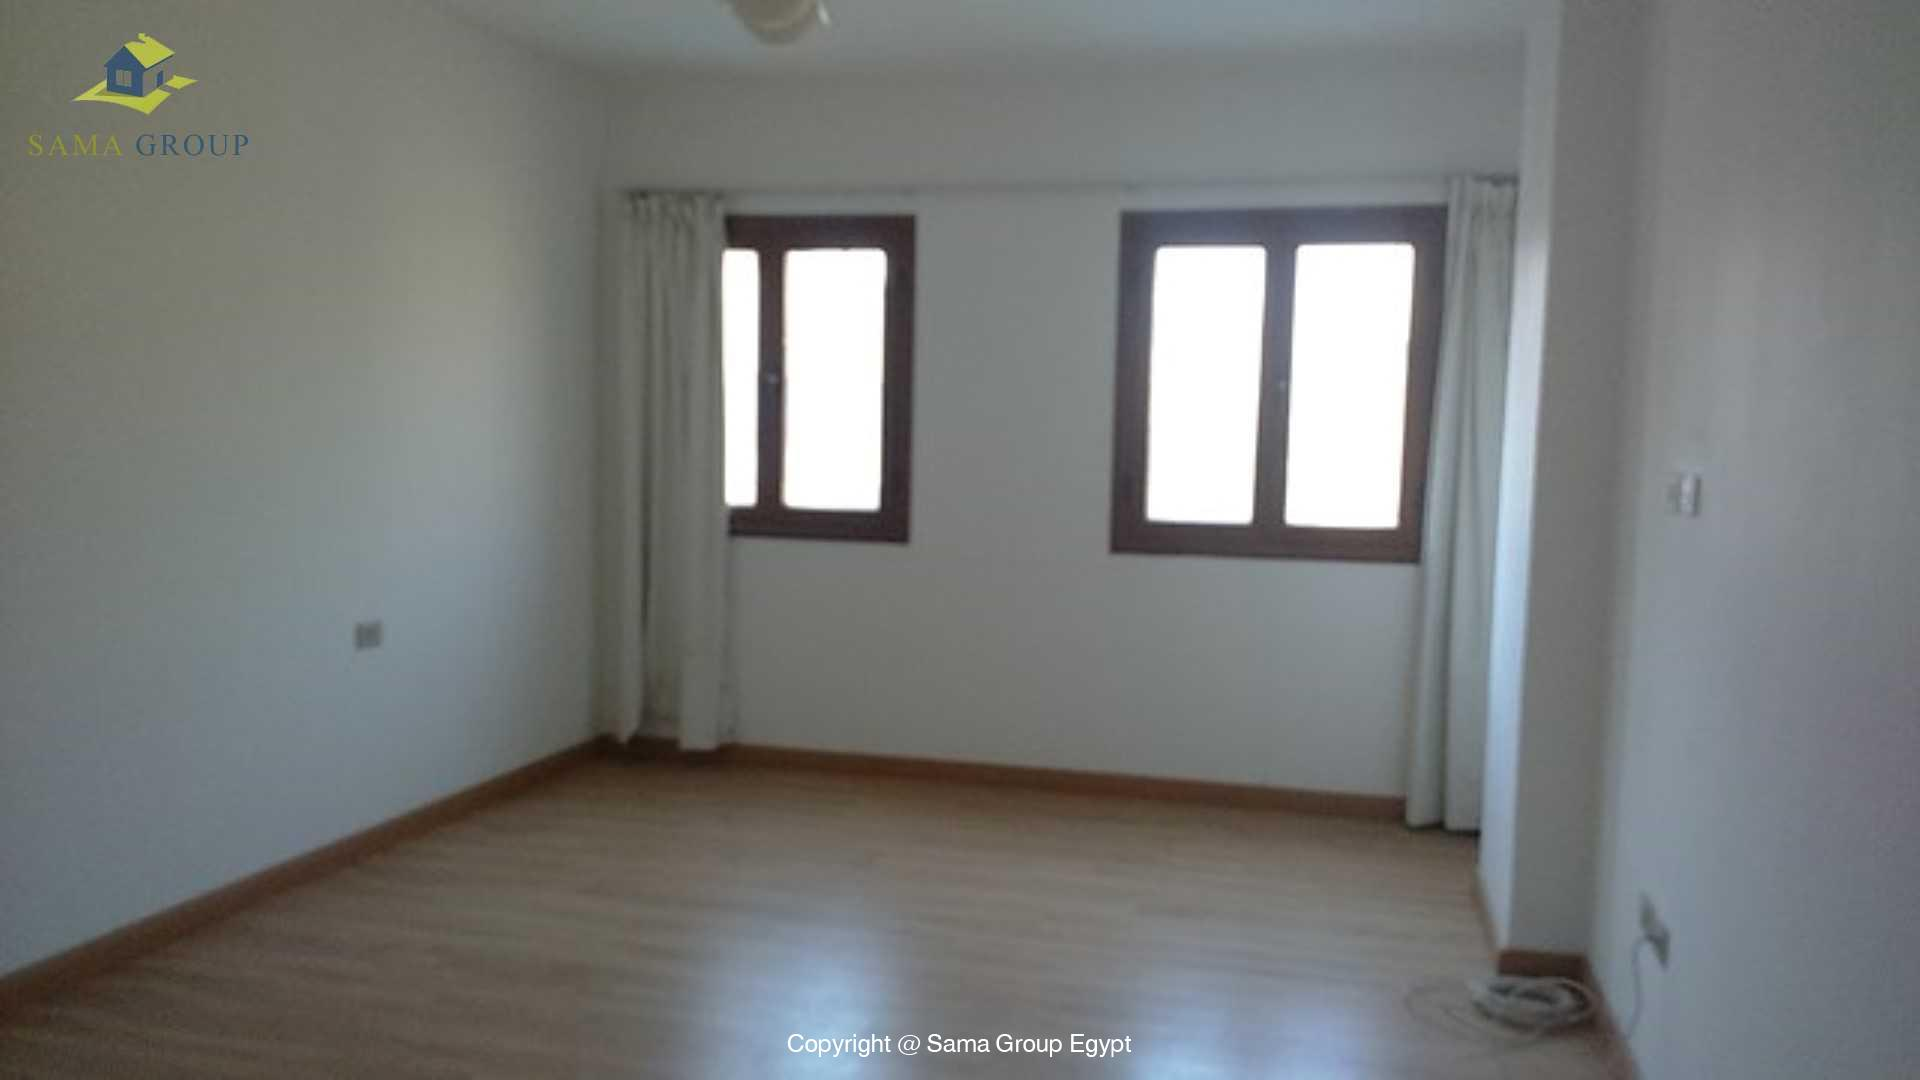 Penthouse with Swimming Pool For Rent In Maadi,Semi furnished,Penthouse NO #8